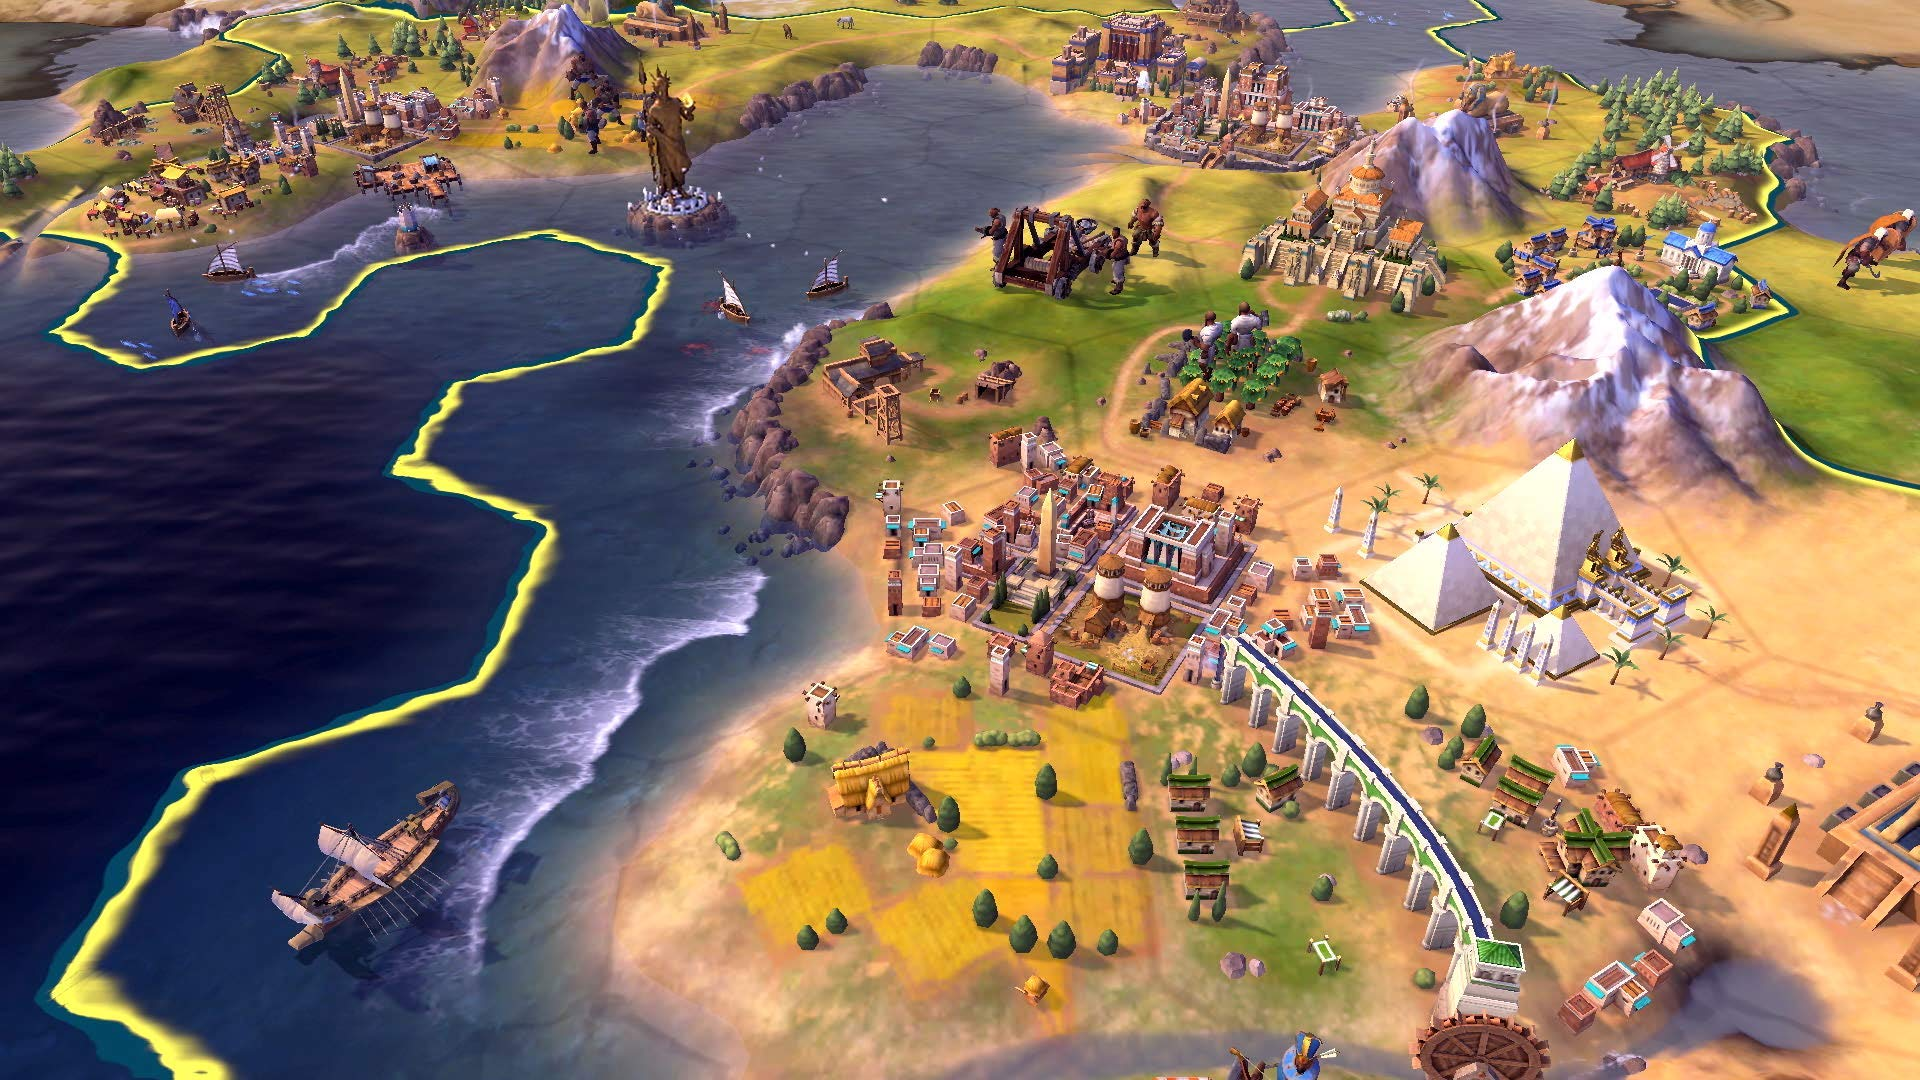 Amazon com: Sid Meier's Civilization VI - Nintendo Switch: Take 2